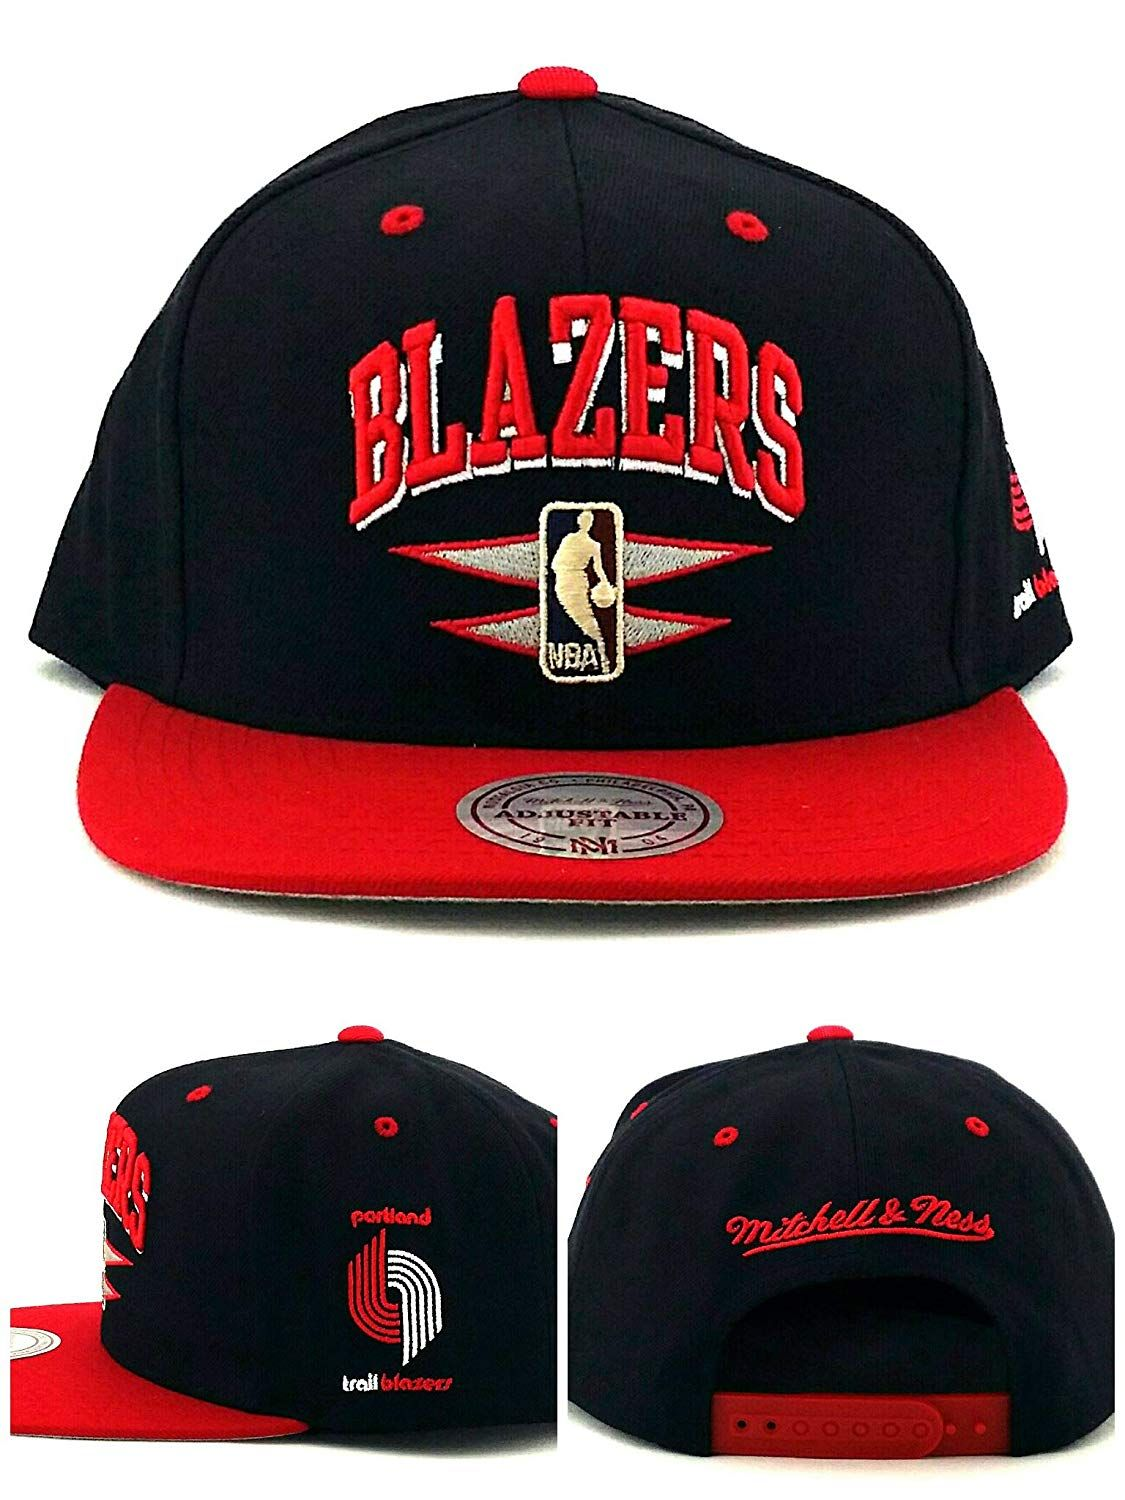 on sale be2fa 551c4 Mitchell   Ness Portland Trail Blazers New Double Diamond Black Era Snapback  Hat,  31.79